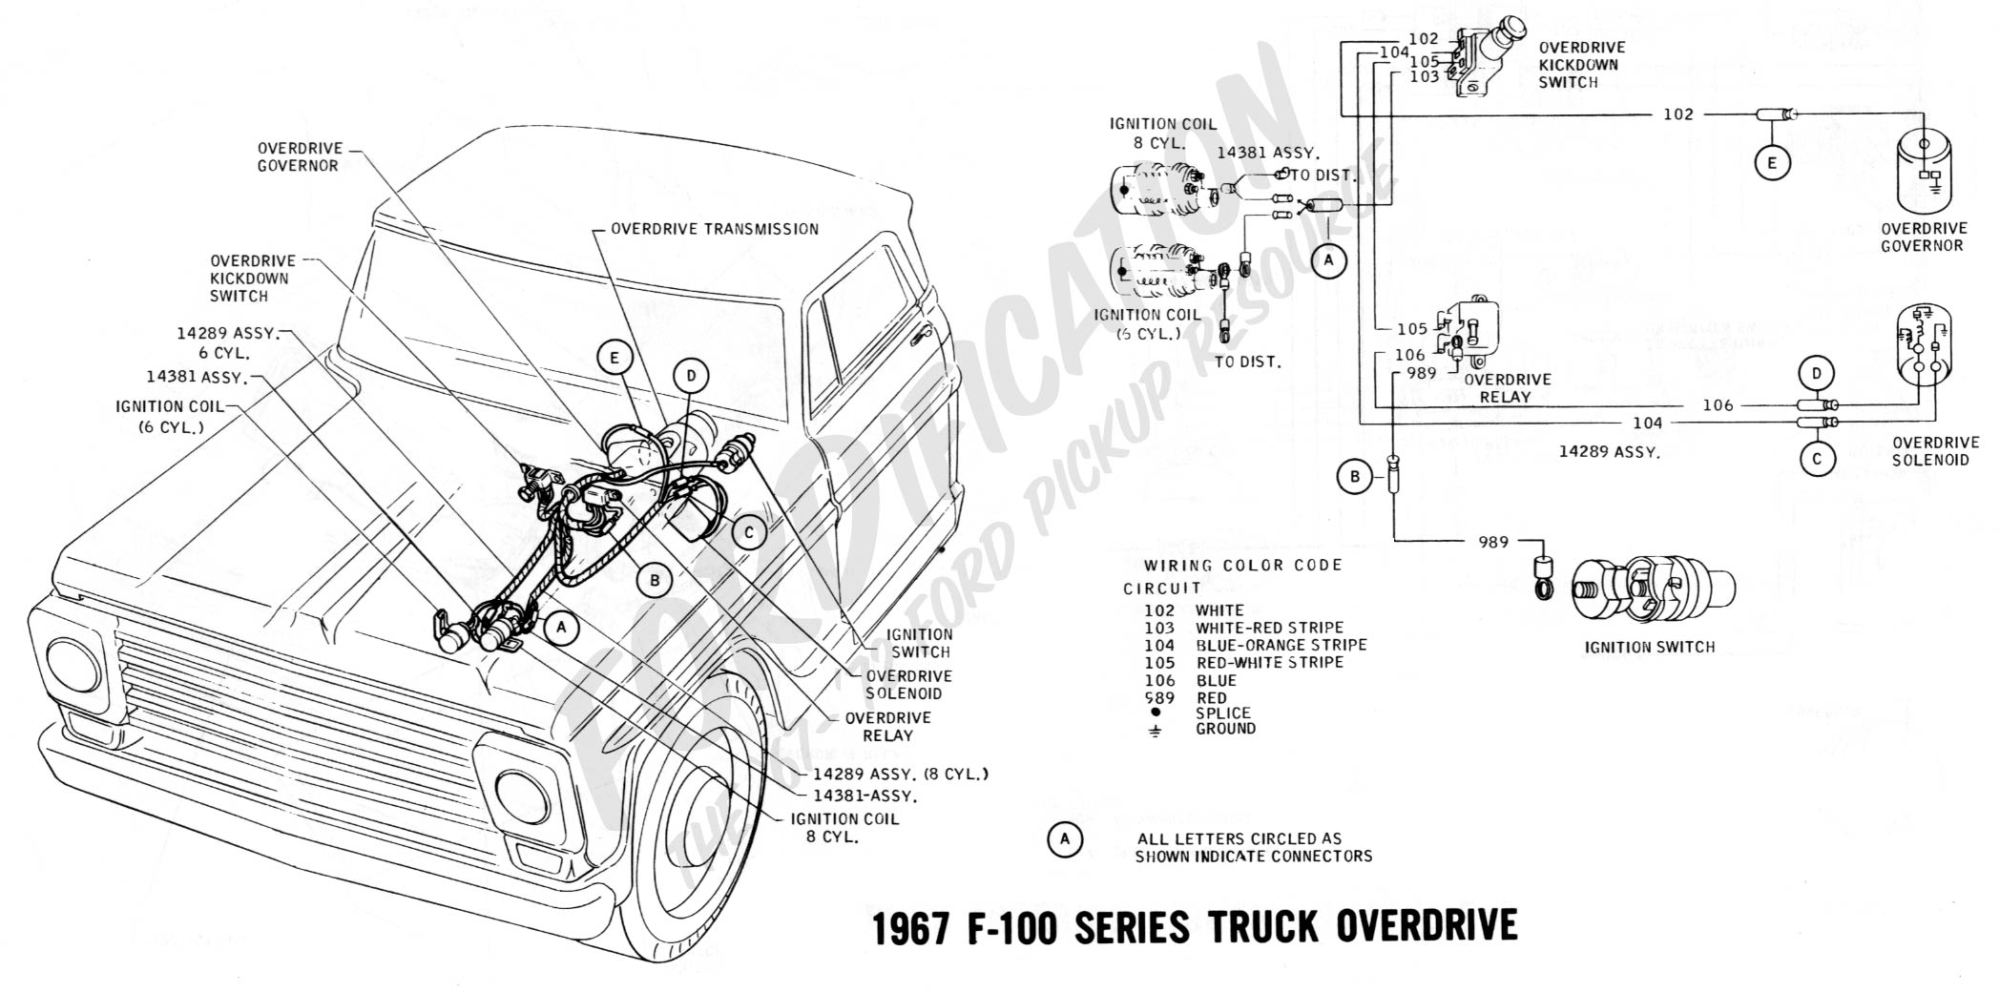 hight resolution of 1969 ford f100 steering column wiring diagram wiring diagram portal 2010 camaro steering column wiring diagram 1978 ford steering column wiring